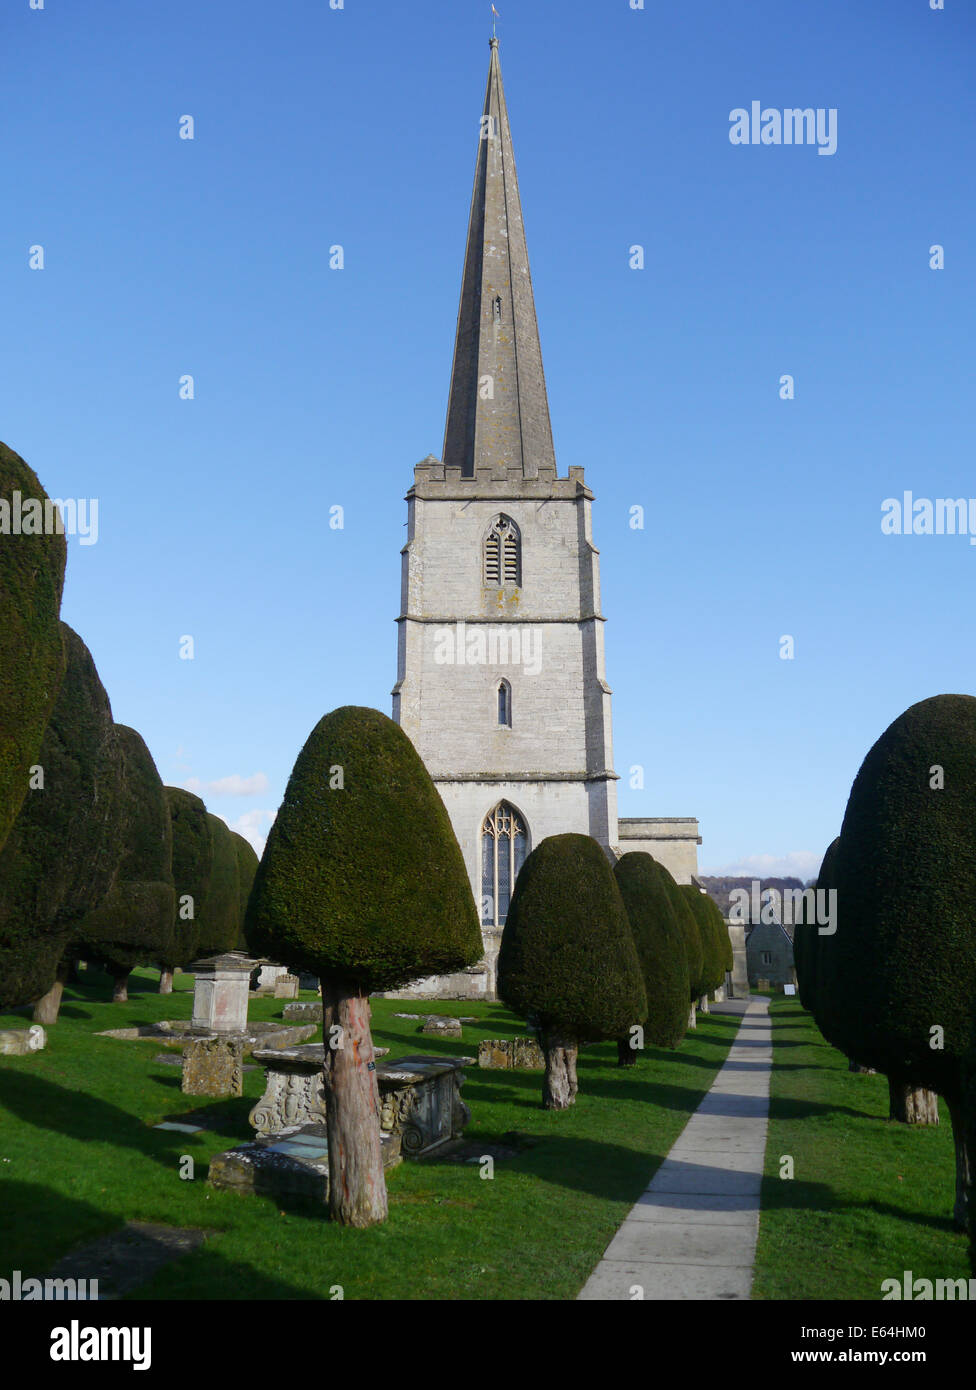 St Marys Parish Church,famous for its Yew Trees. In the Cotswolds Village of Painswick, Gloucestershire,England. - Stock Image